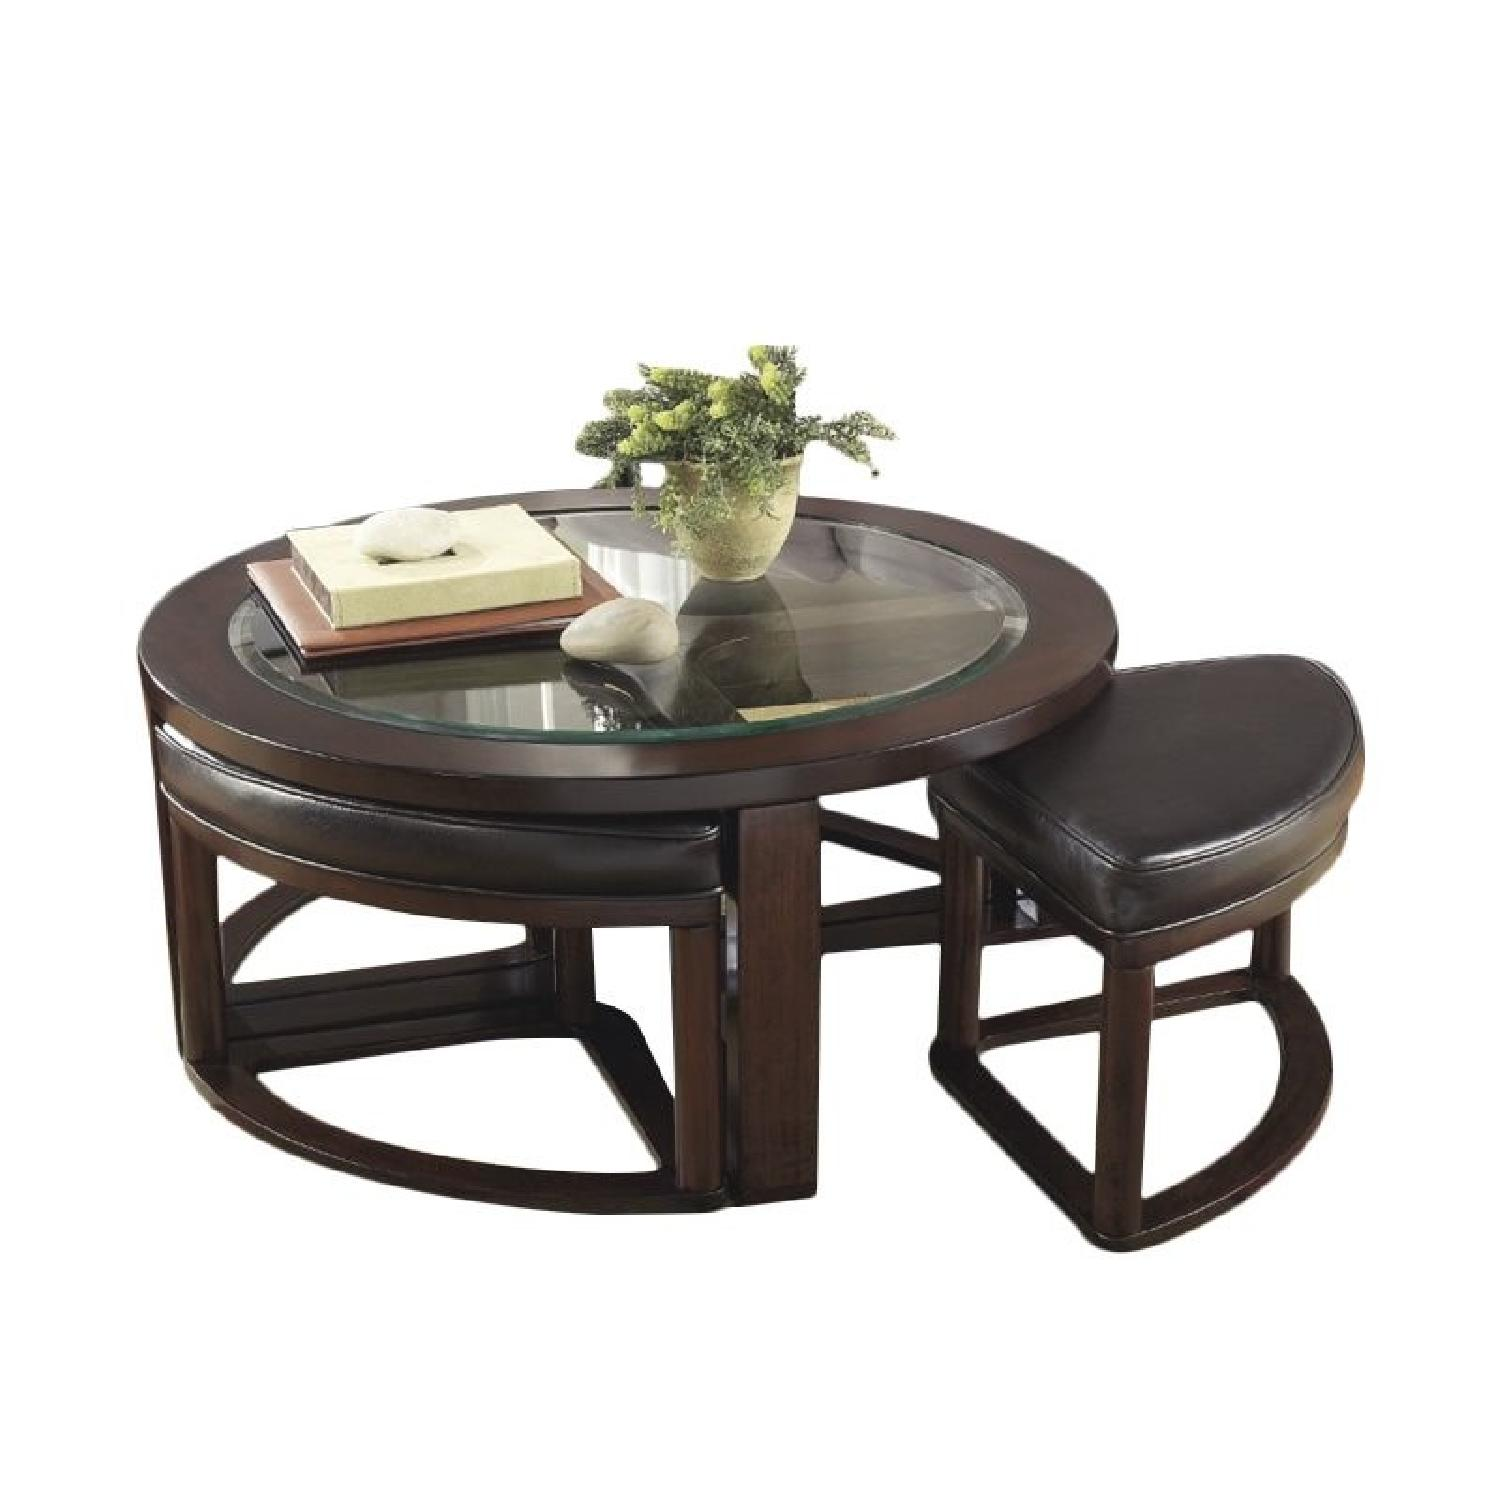 Ashley Wood & Glass Coffee Table w/ 4 Nesting Stools - image-0